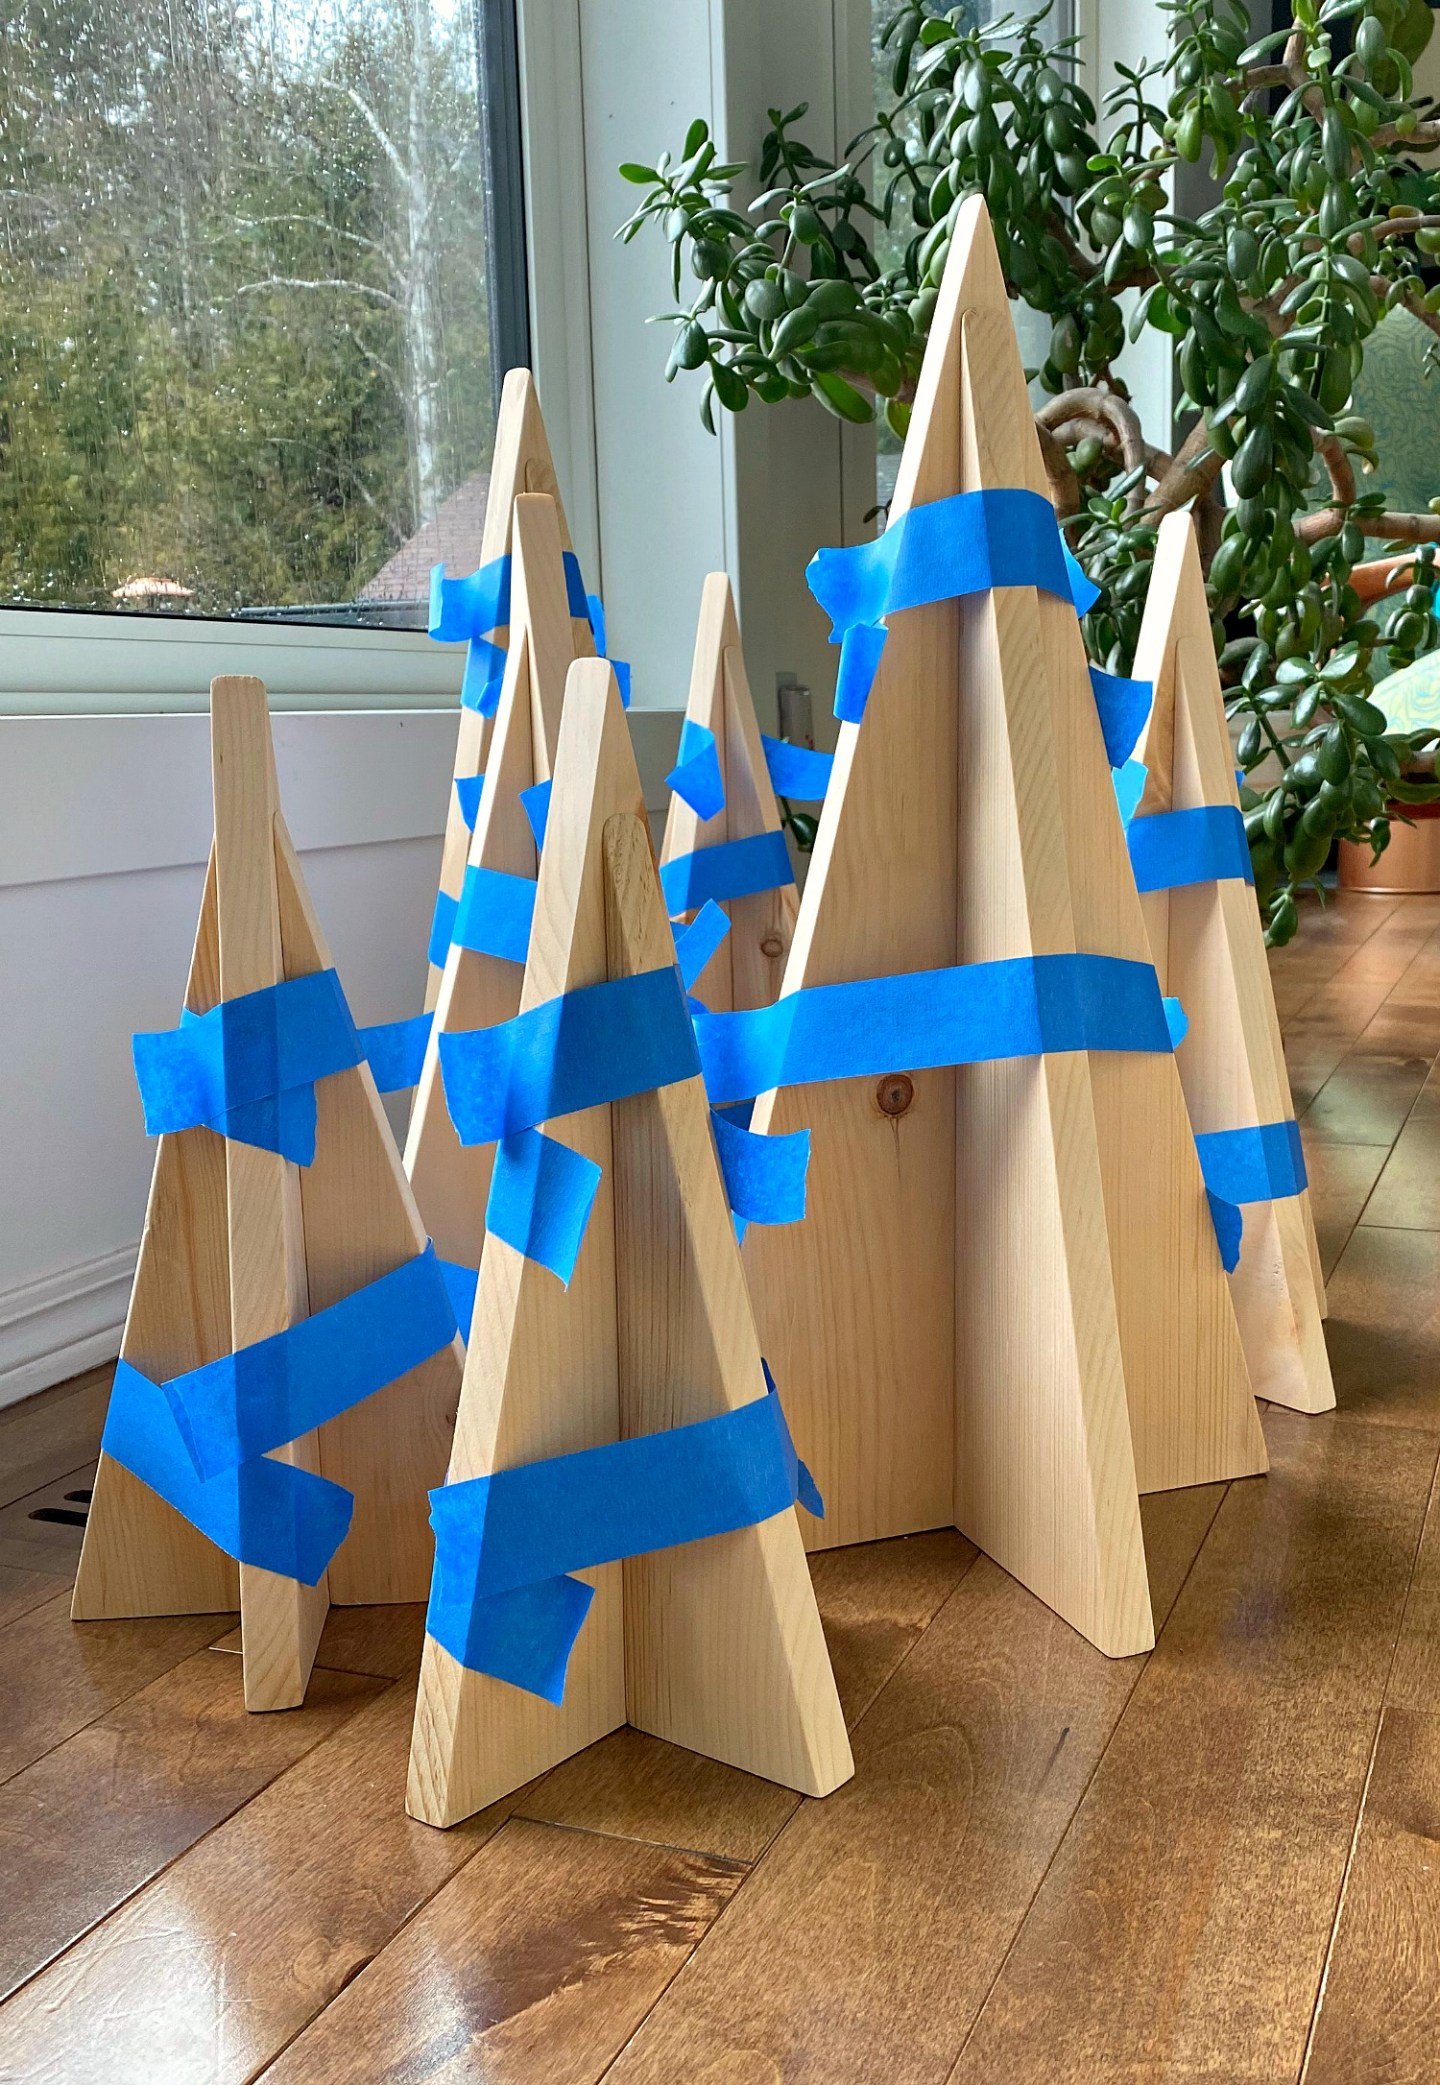 DIY Wood Christmas Trees - Make Your Own Wood Tabletop Trees!